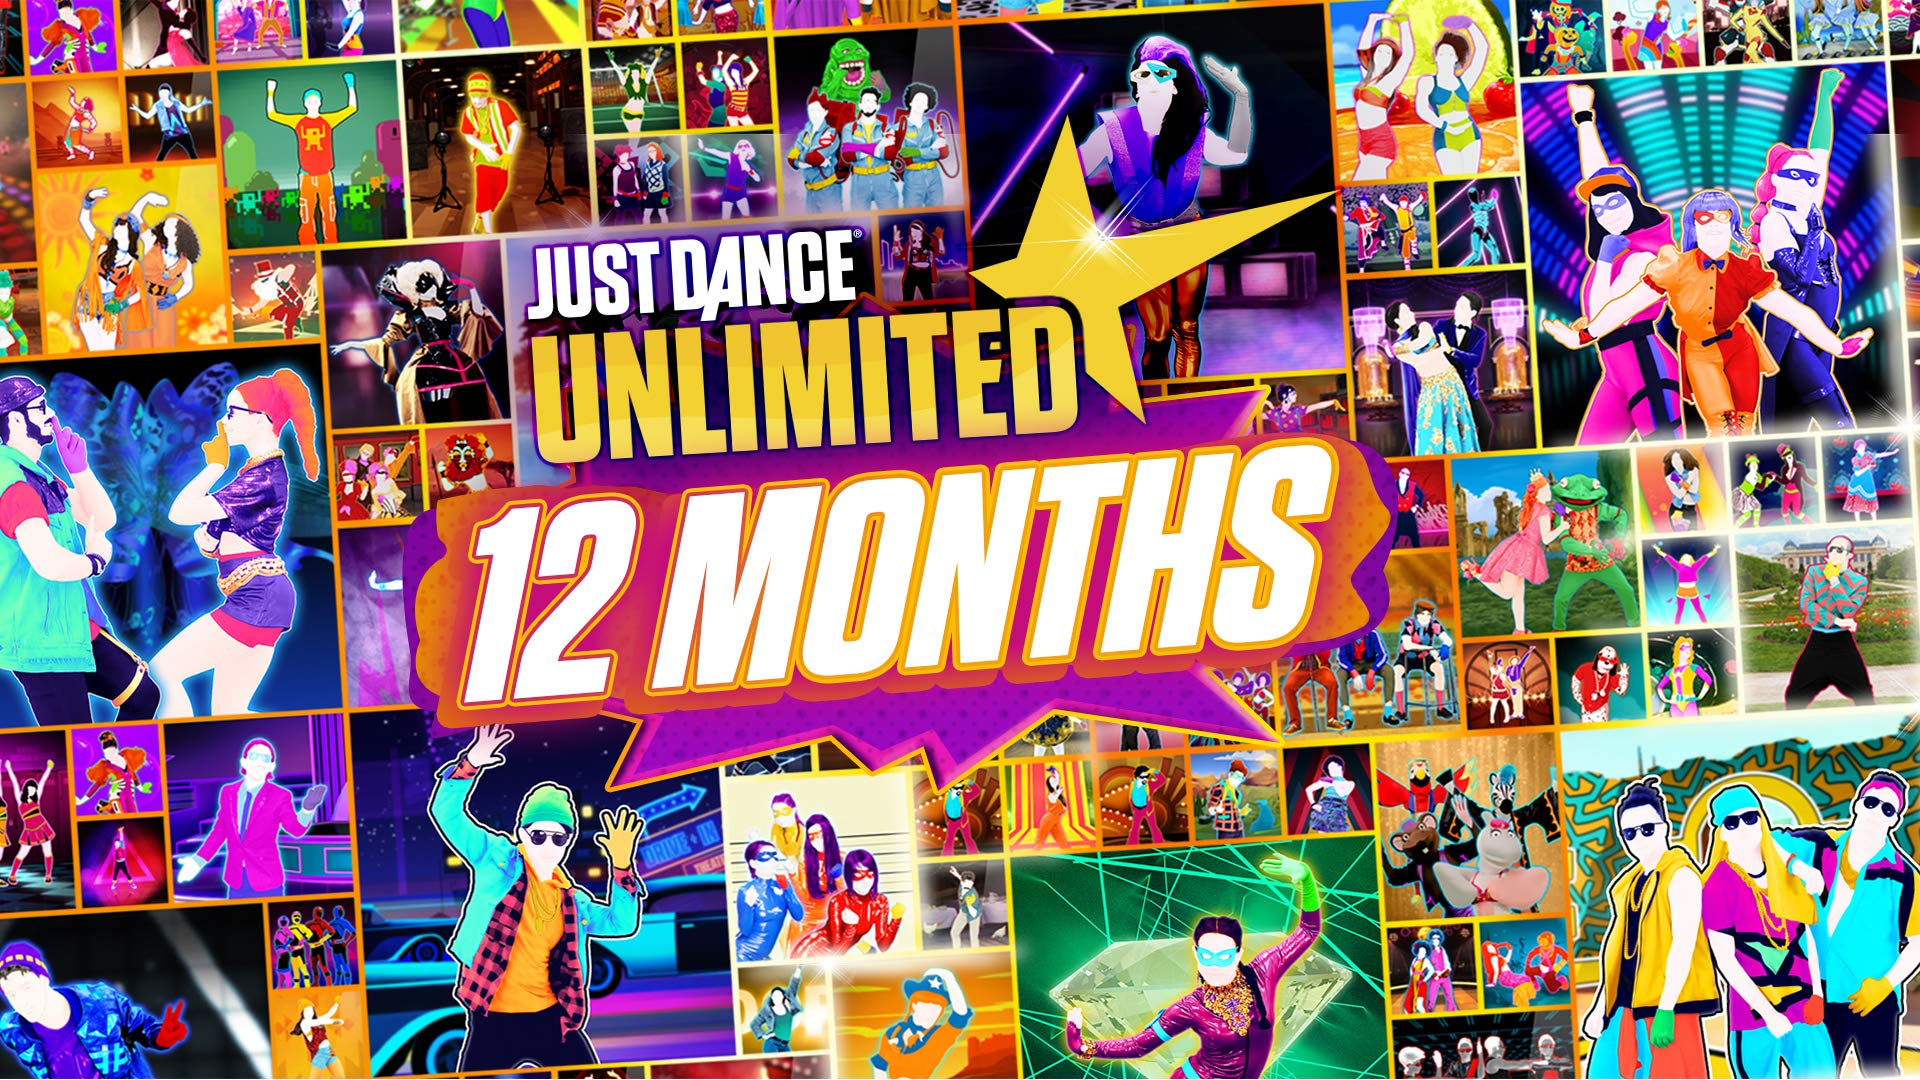 Just Dance Unlimited 365 Days - Nintendo Switch [Digital Code] by Ubisoft